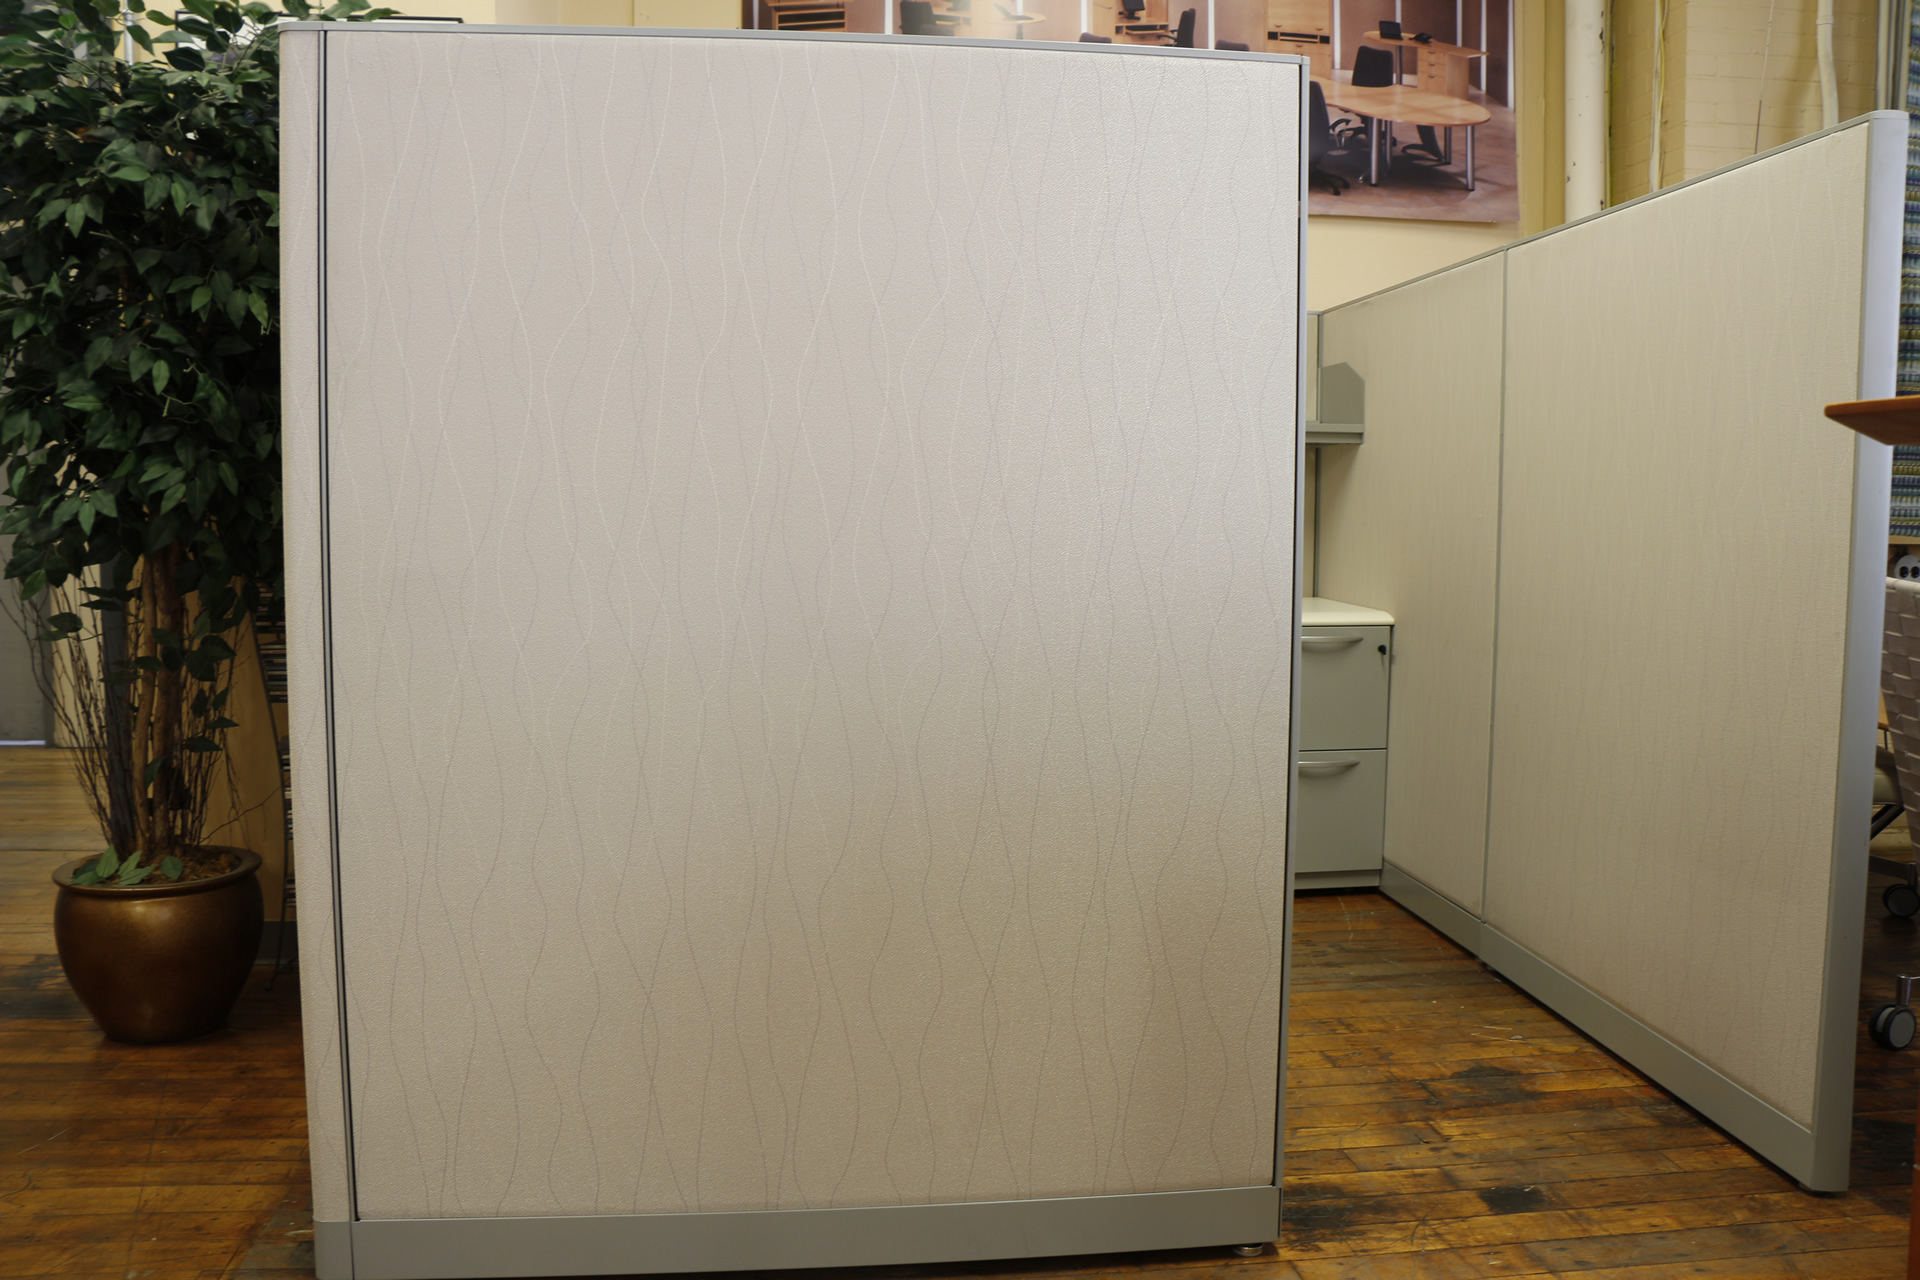 peartreeofficefurniture_peartreeofficefurniture_mg_4408.jpg